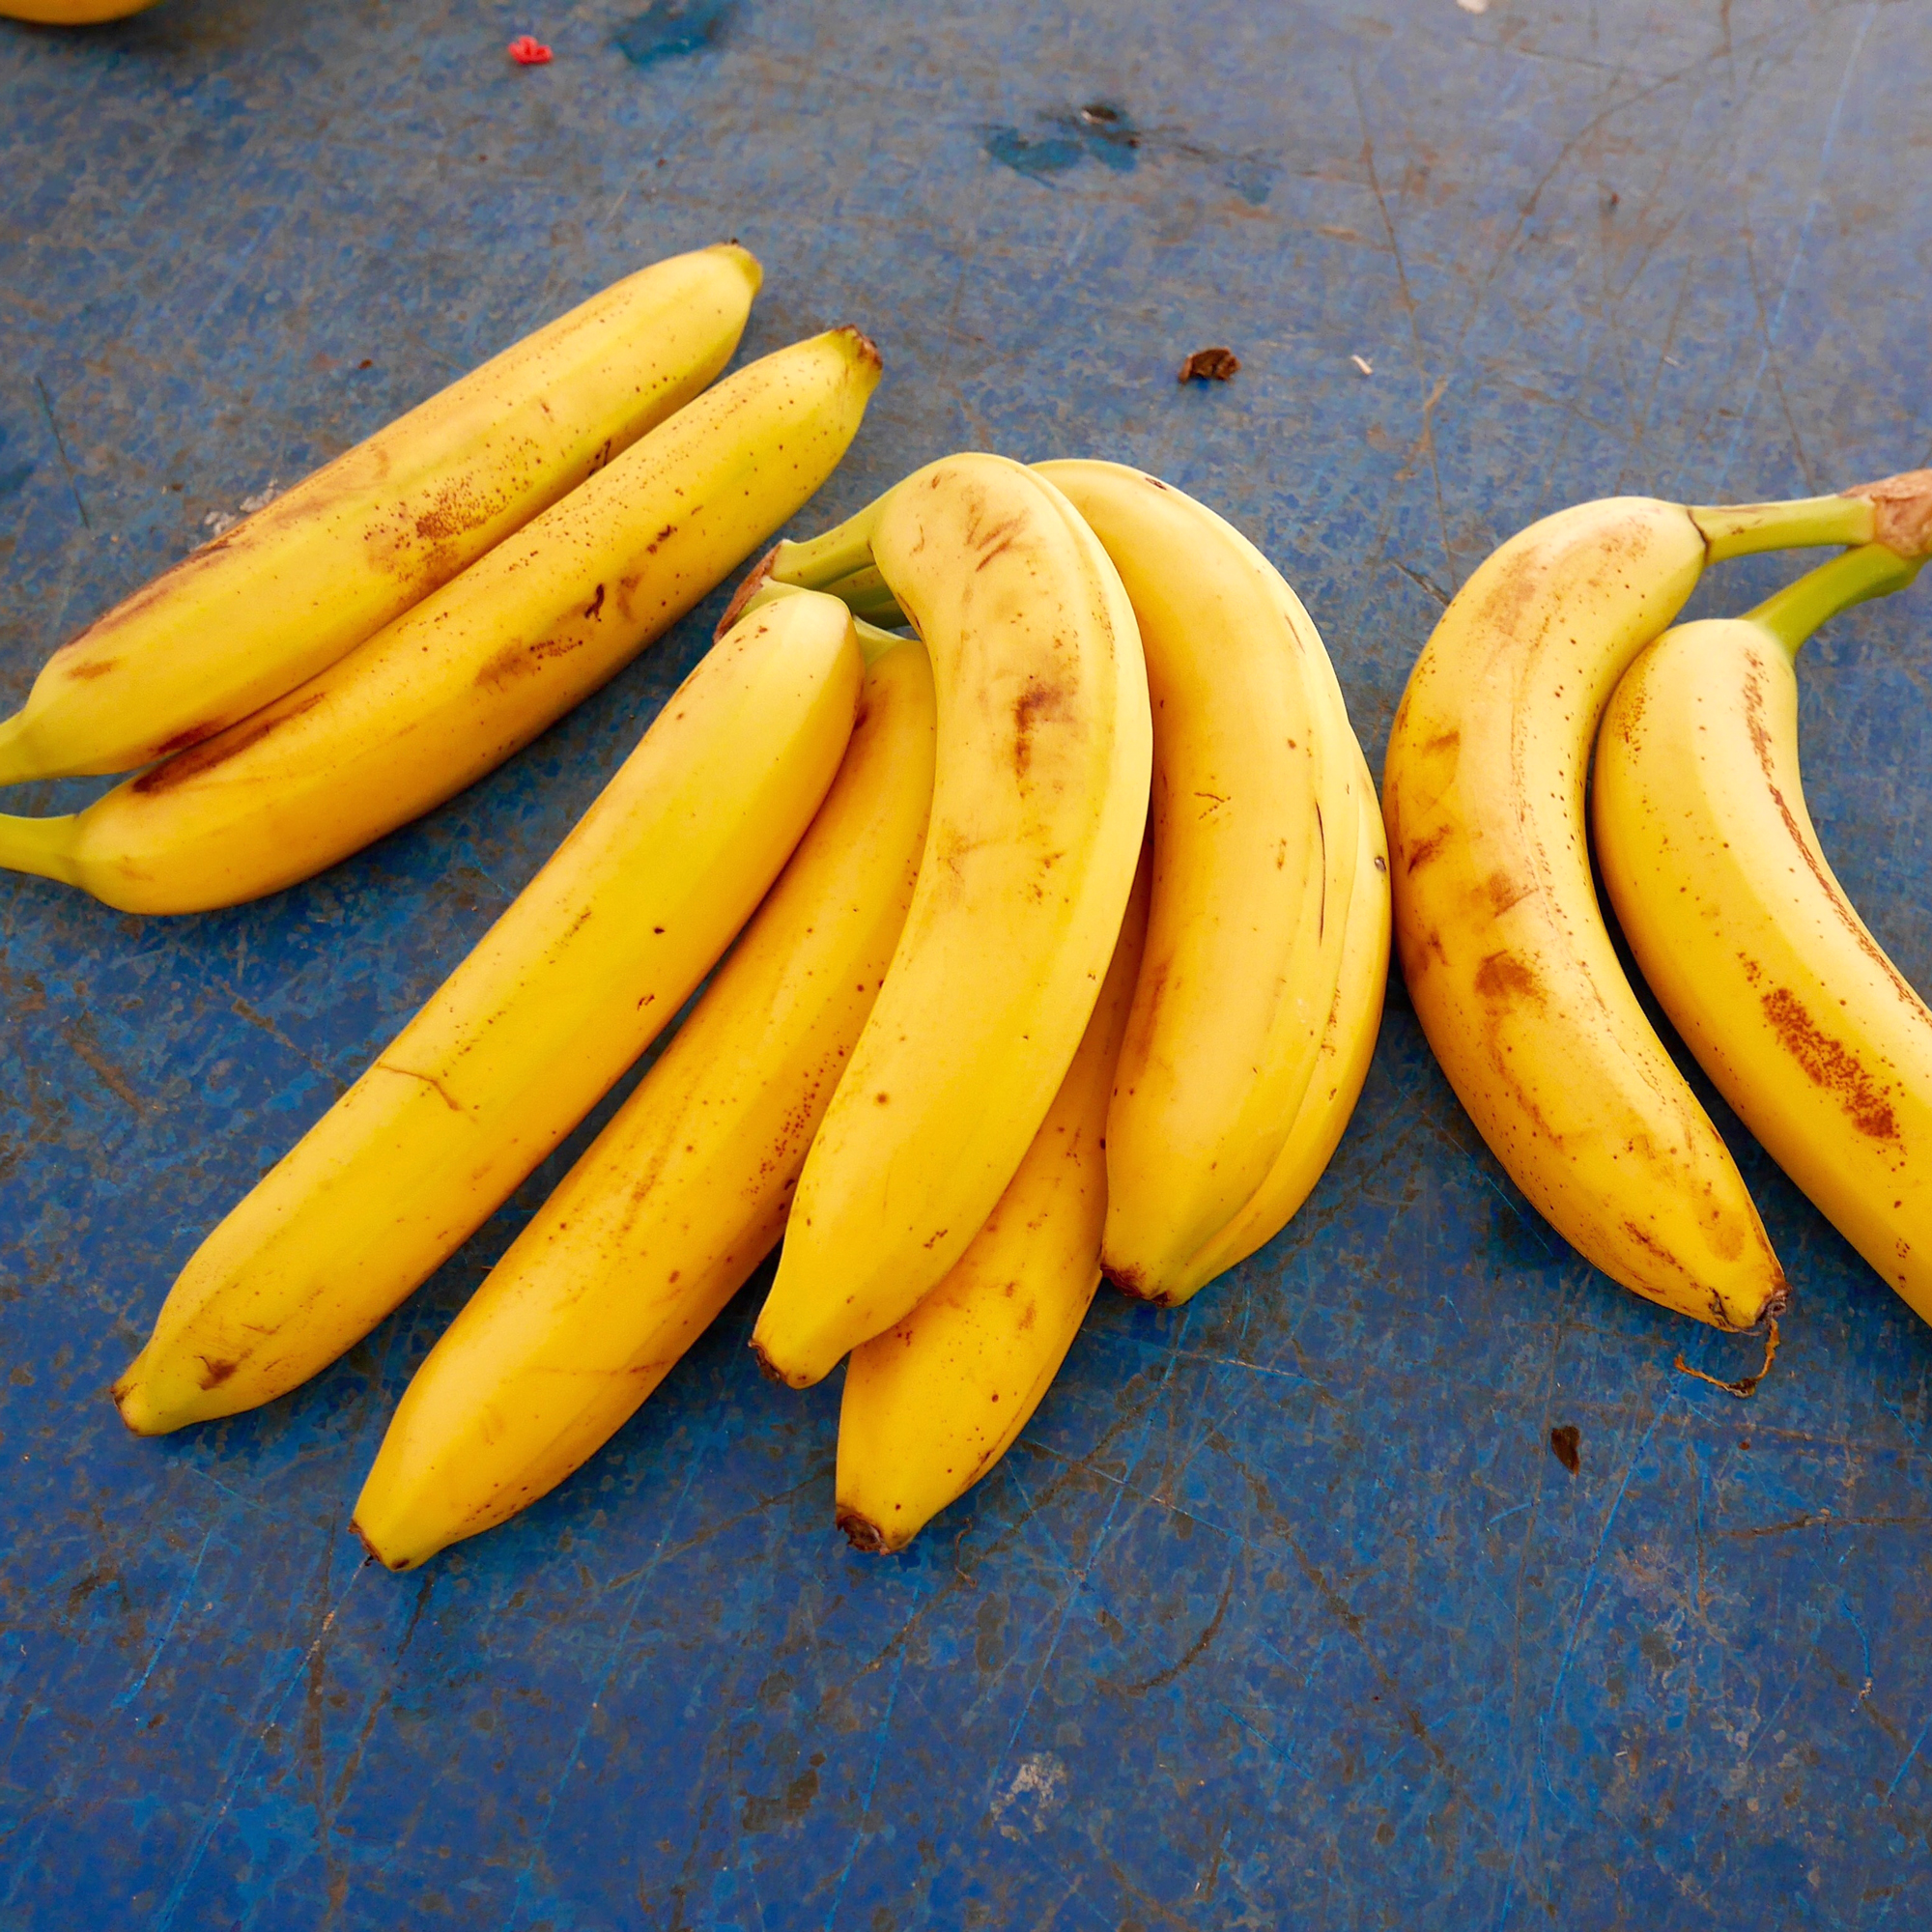 Are Bananas Really on Their Way to Extinction?